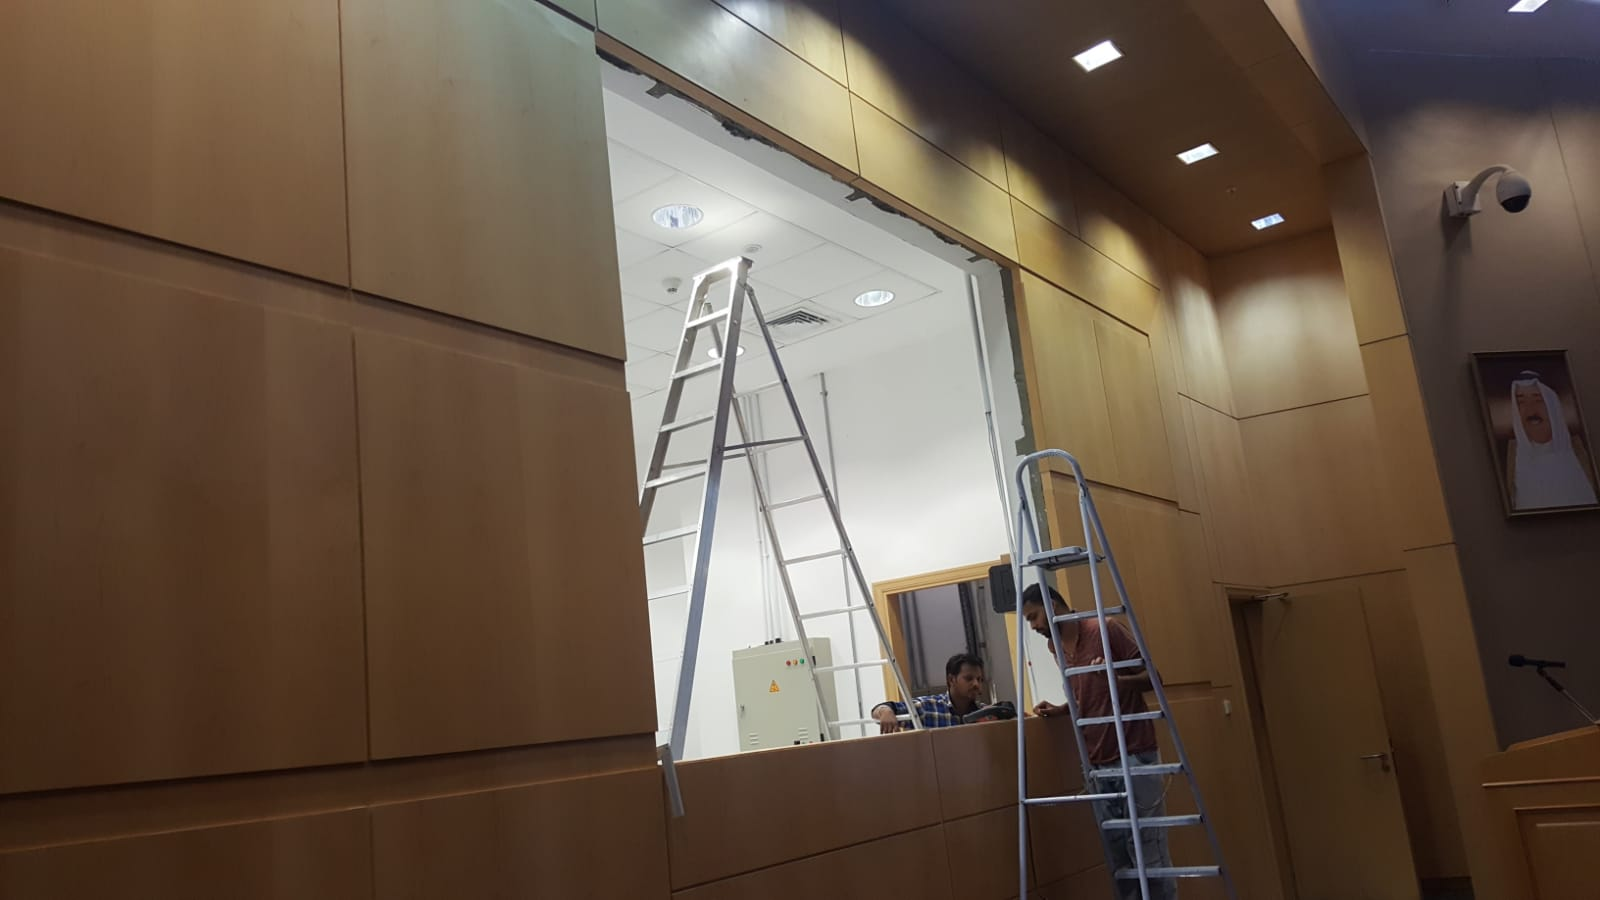 LED screen installation place is empty